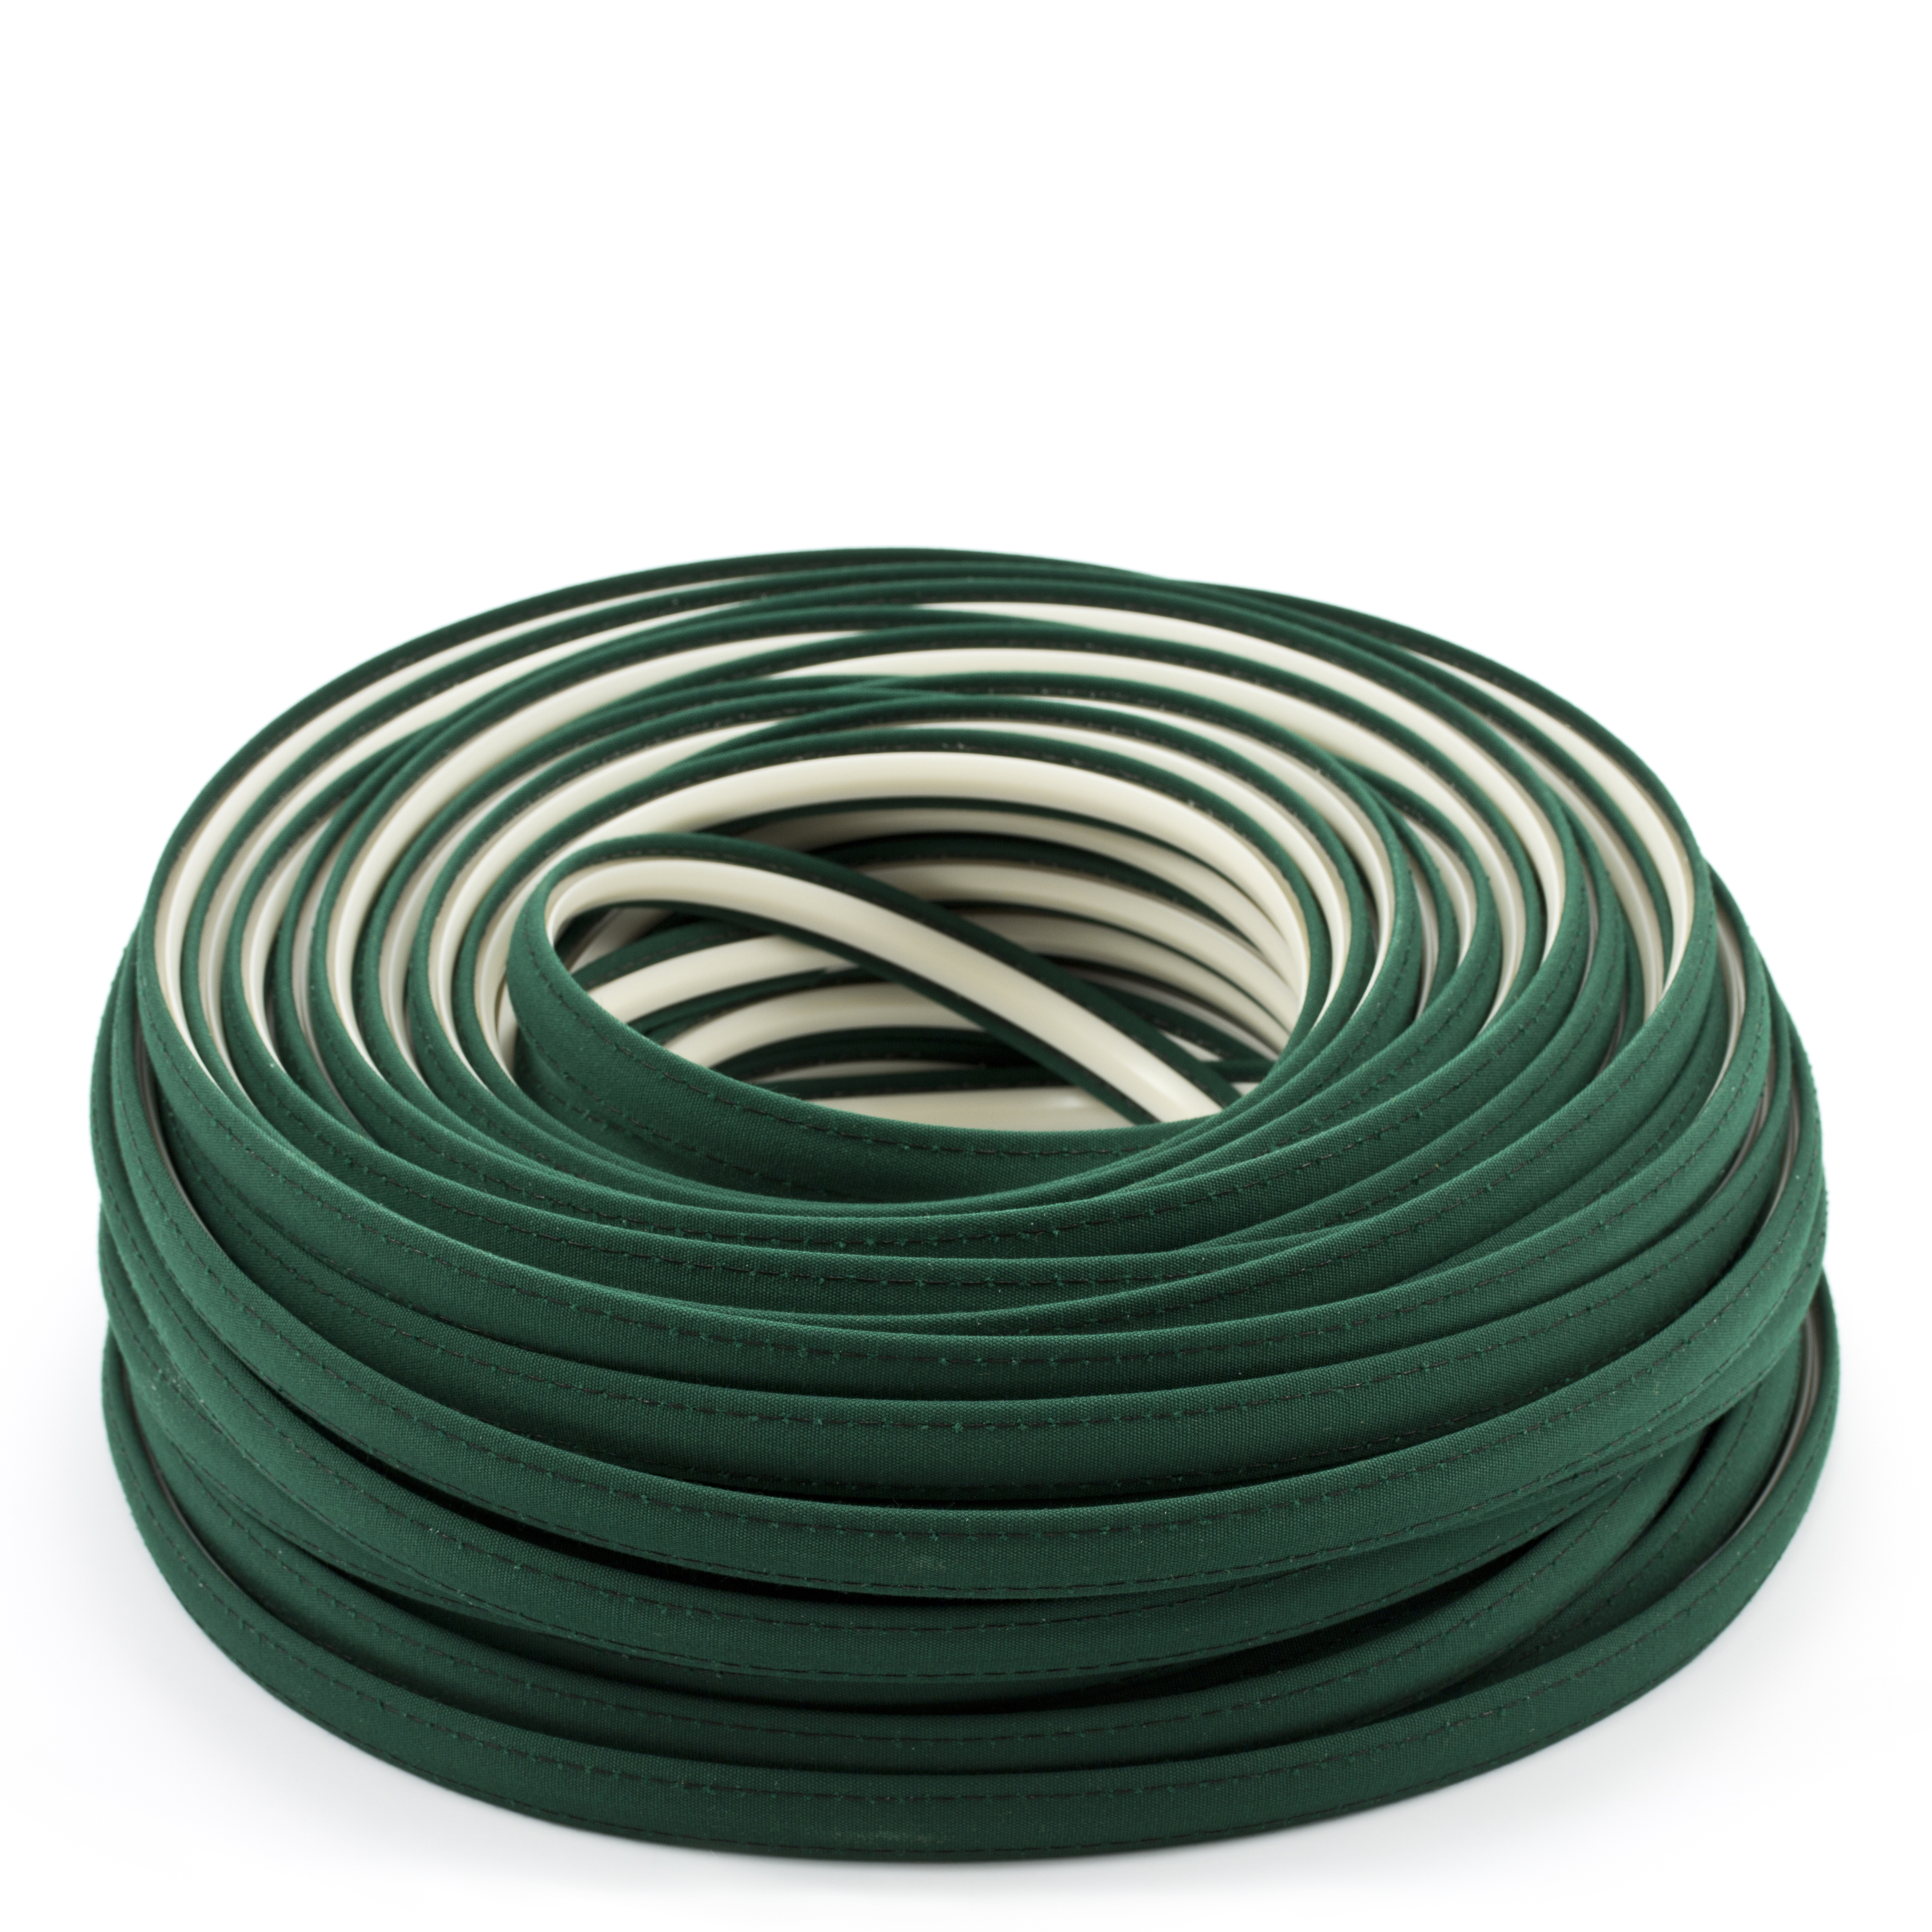 Steel Stitch Sunbrella Covered ZipStrip with Tenara Thread #4637 Forest Green 160' Full Rolls Only